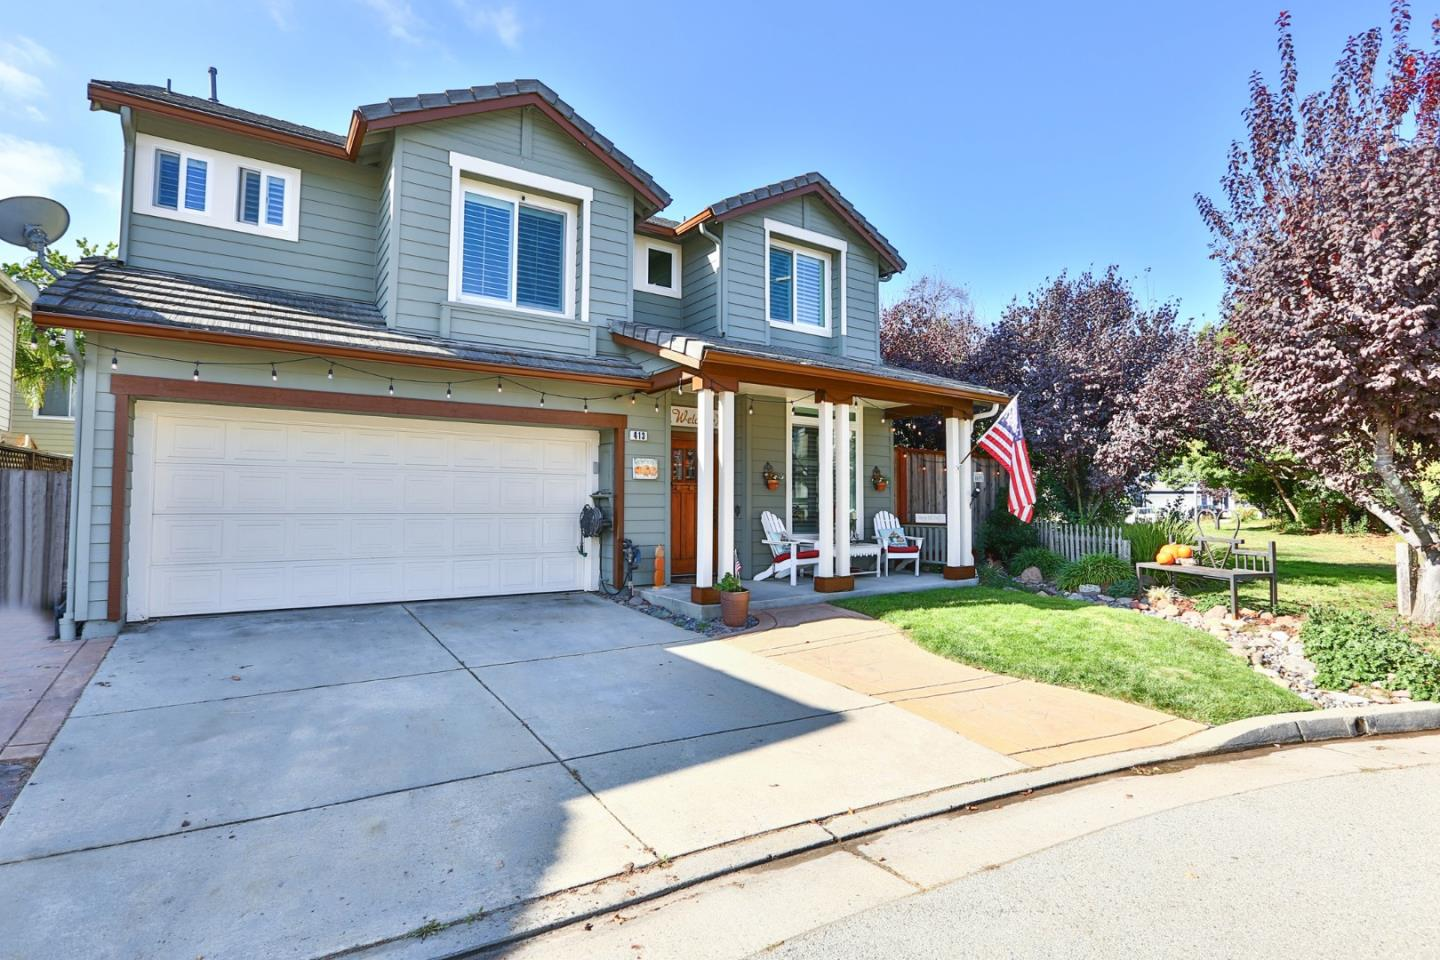 This is the Skypark home you've been waiting for! Corner lot with a large landscaped yard and tastefully remodeled throughout. Highlighted by Sunpower solar, water softening and purification systems, new Milgard windows, built in bar with wine cooler, gas insert fireplace, Nest thermostat, and Ring doorbell. The distinguished backyard is private, low maintenance, and adjacent to the greenbelt. There are numerous family friendly amenities in Skypark which boasts basketball & tennis courts, soccer fields, playgrounds, bocce ball courts, a dog park and skate park. Walking distance to the newly renovated middle school, library, and movie theatre. Great commuter location with easy access to HWY17, 30min to the Silicon Valley and 10min to Santa Cruz beaches.